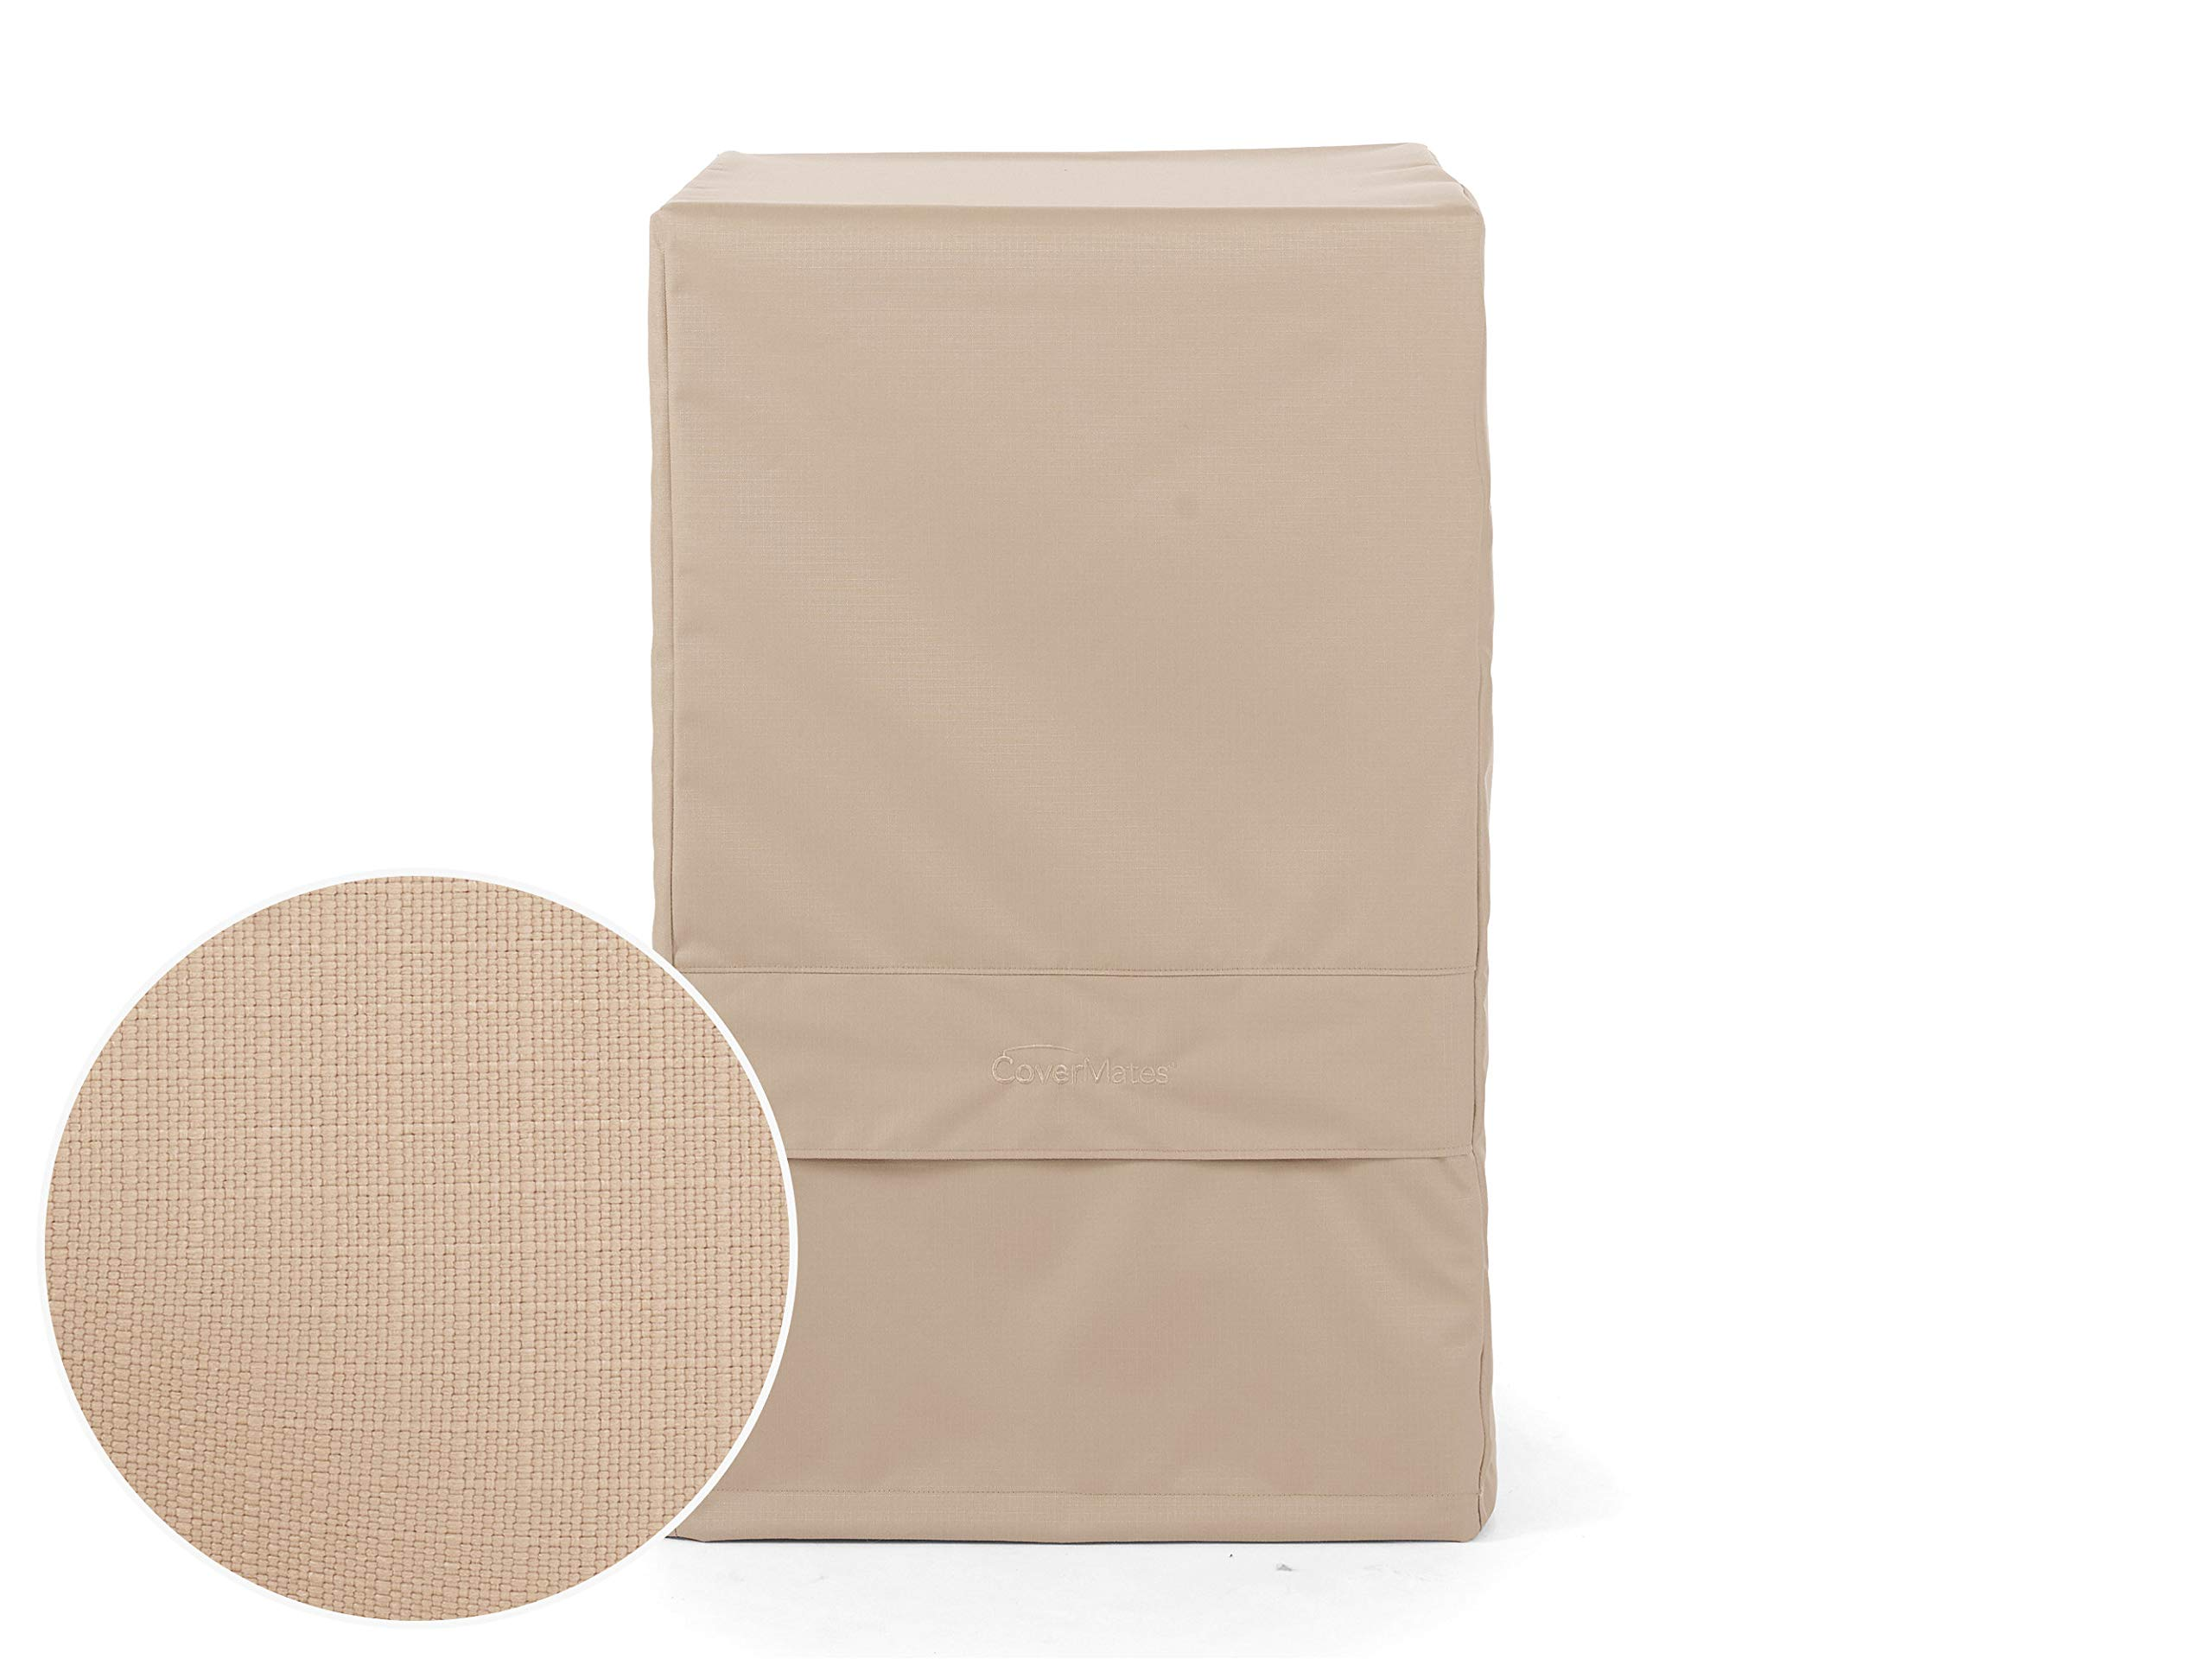 Covermates - Smoker Cover - Fits 27 Inch Width, 20 Inch Depth and 40 Inch Height - Ultima Ripstop - 600D Fade/Water Resistant Poly - Auto-Locking Locking Drawcord - 7 Year Warranty - Ripstop Tan